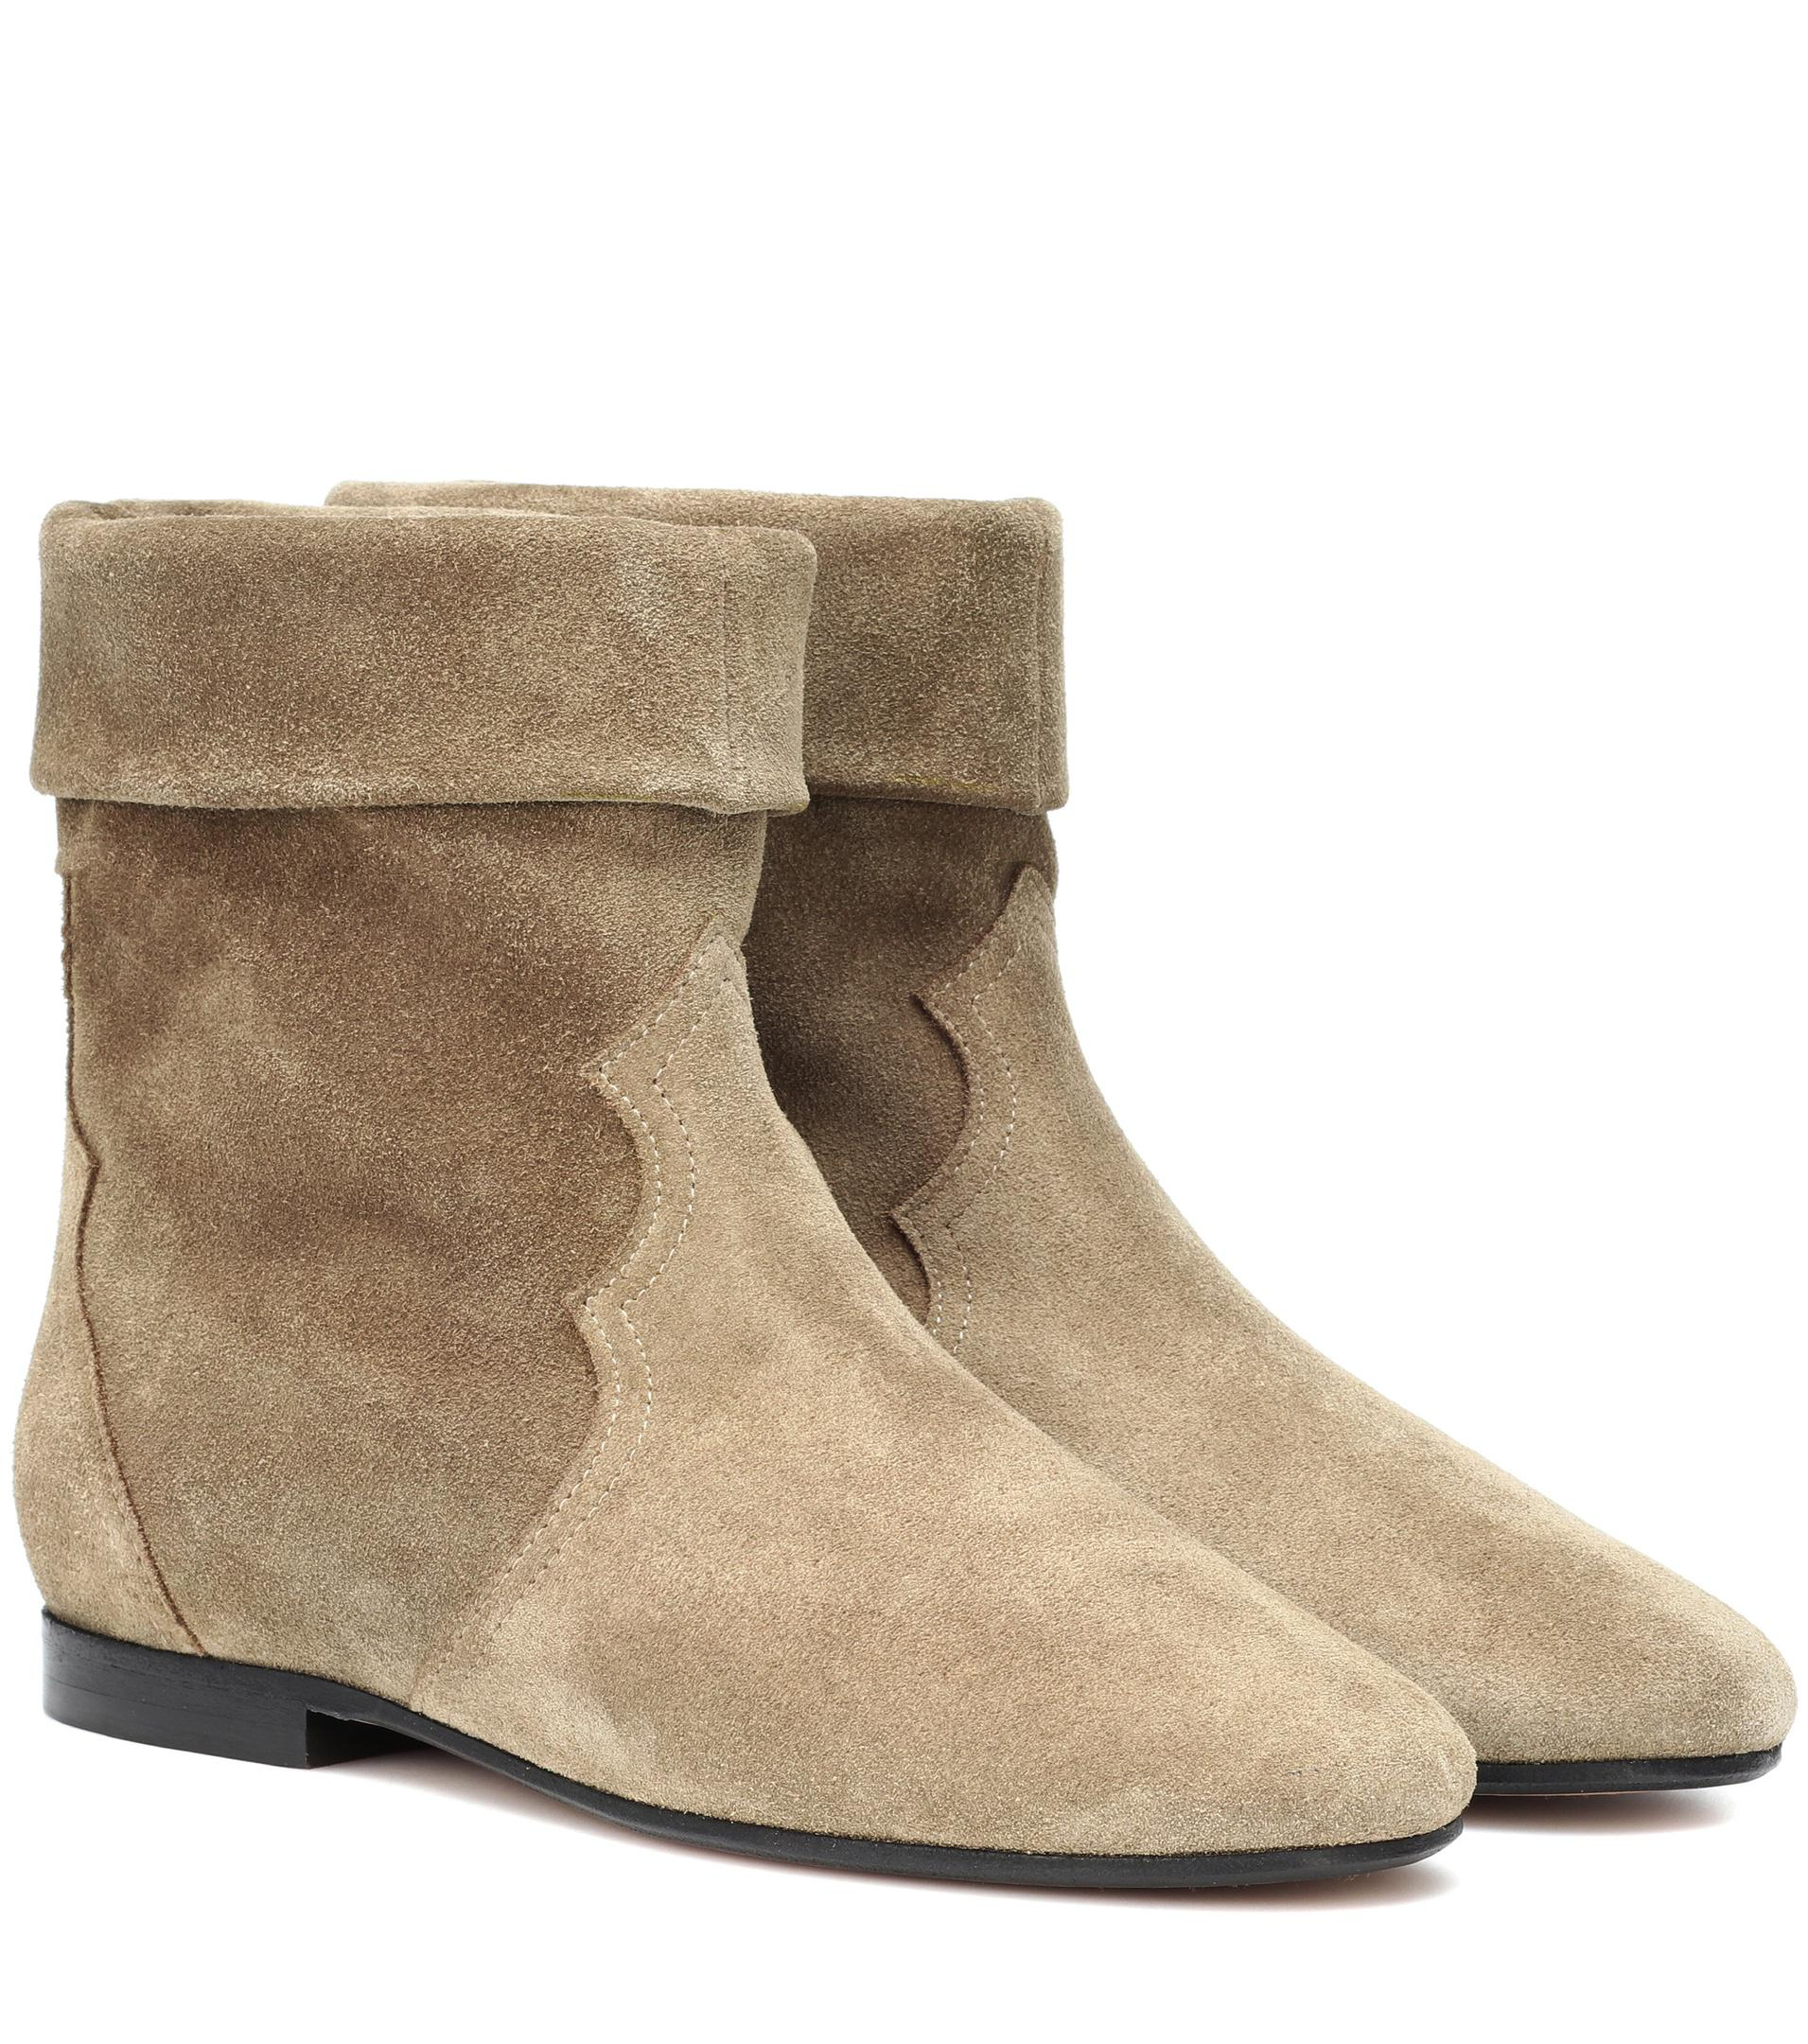 Buy Cheap Many Kinds Of Isabel Marant Ringal suede ankle boots Recommend For Sale cBI8GT